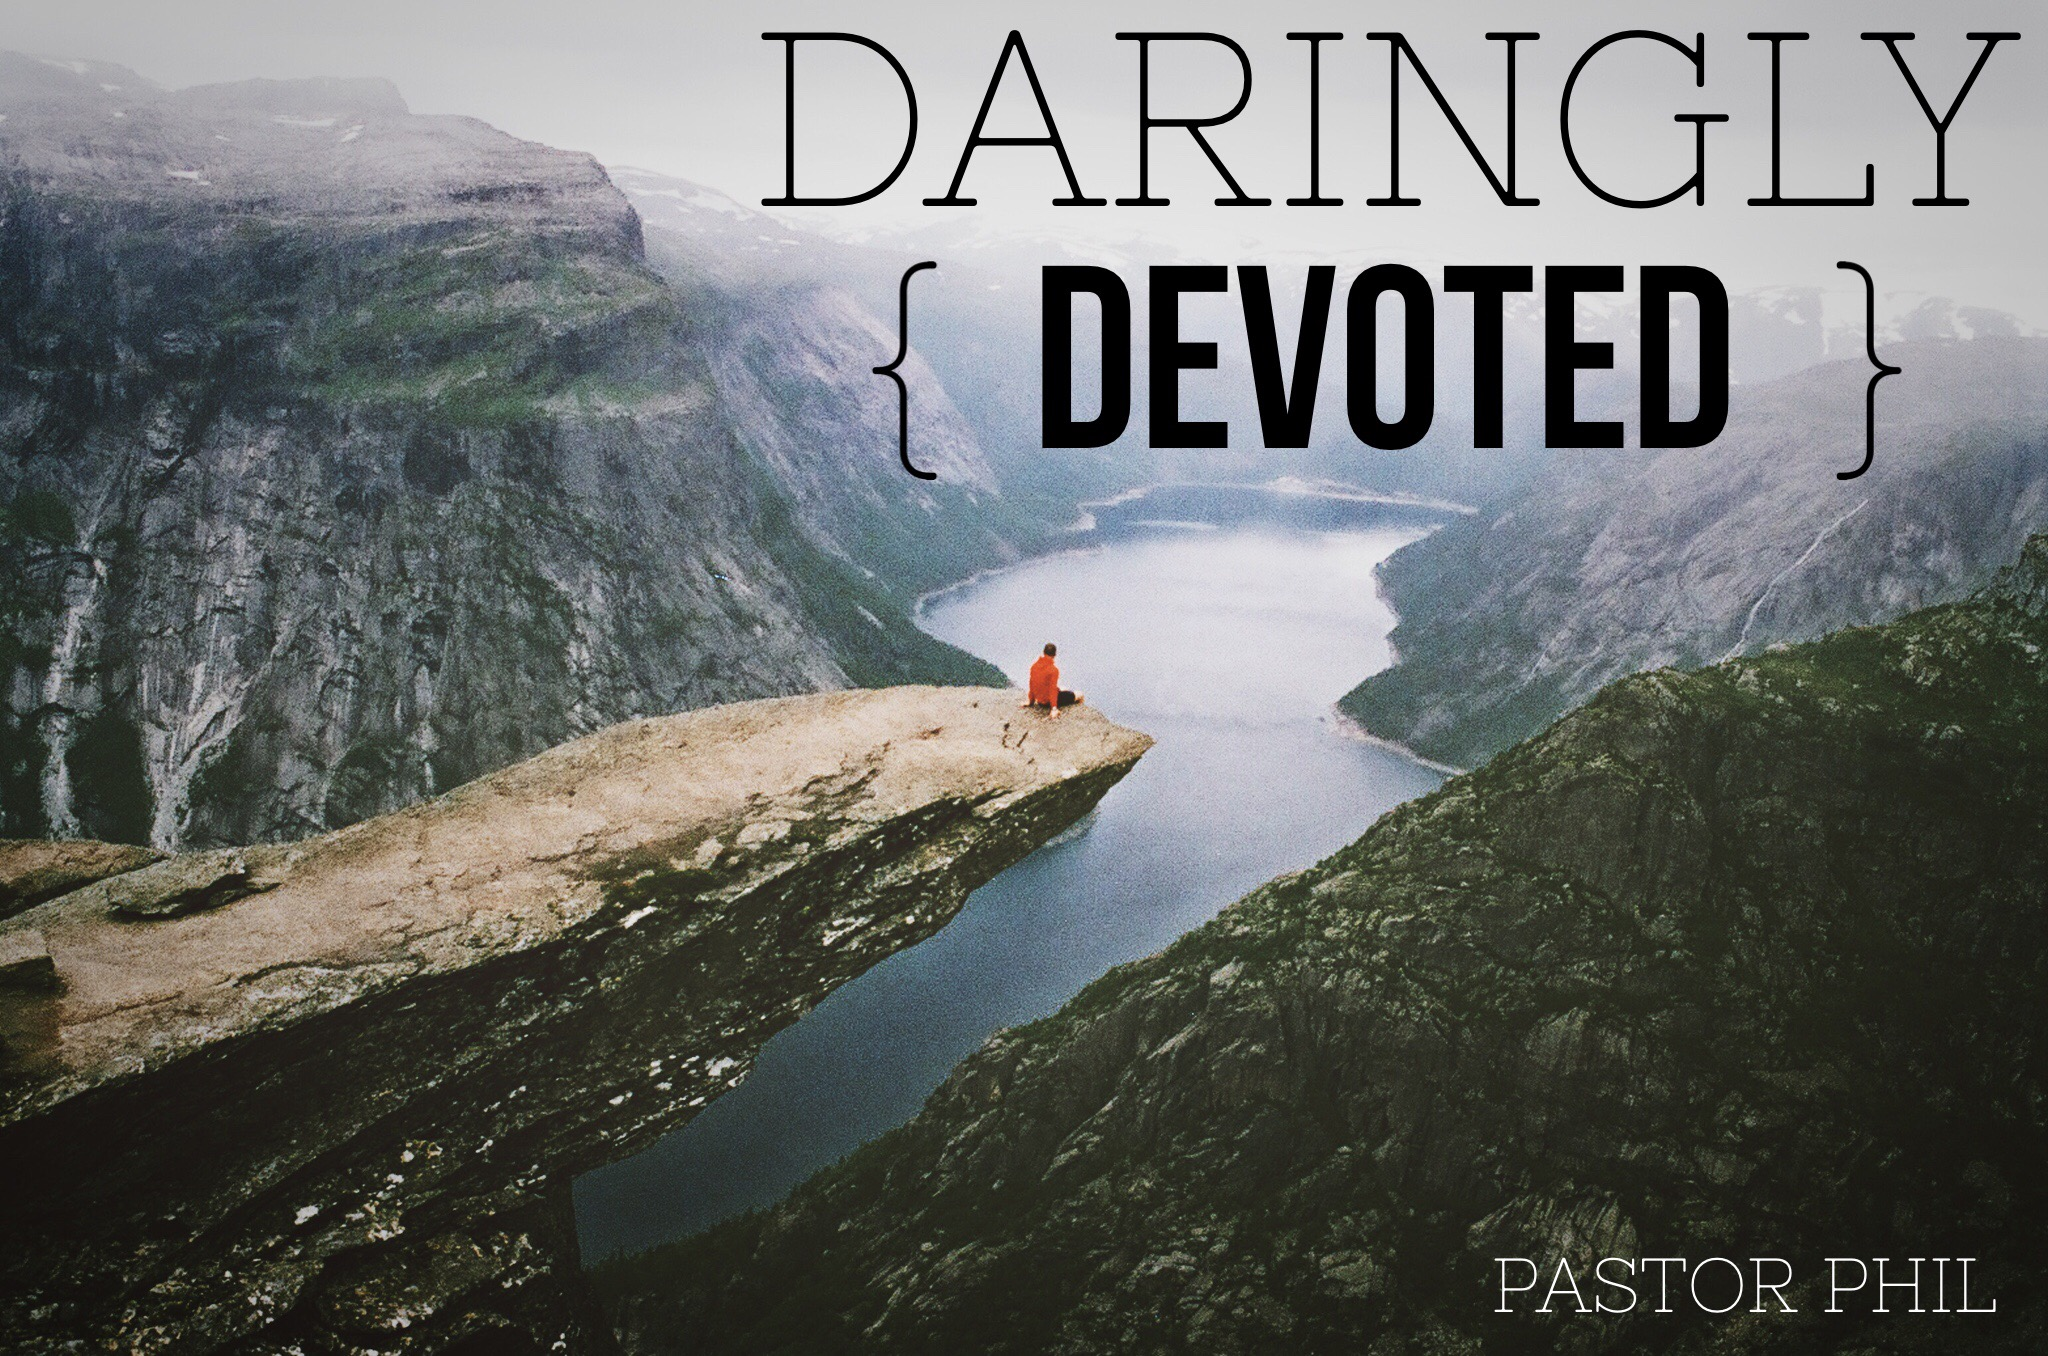 Daringly Devoted Pt 1